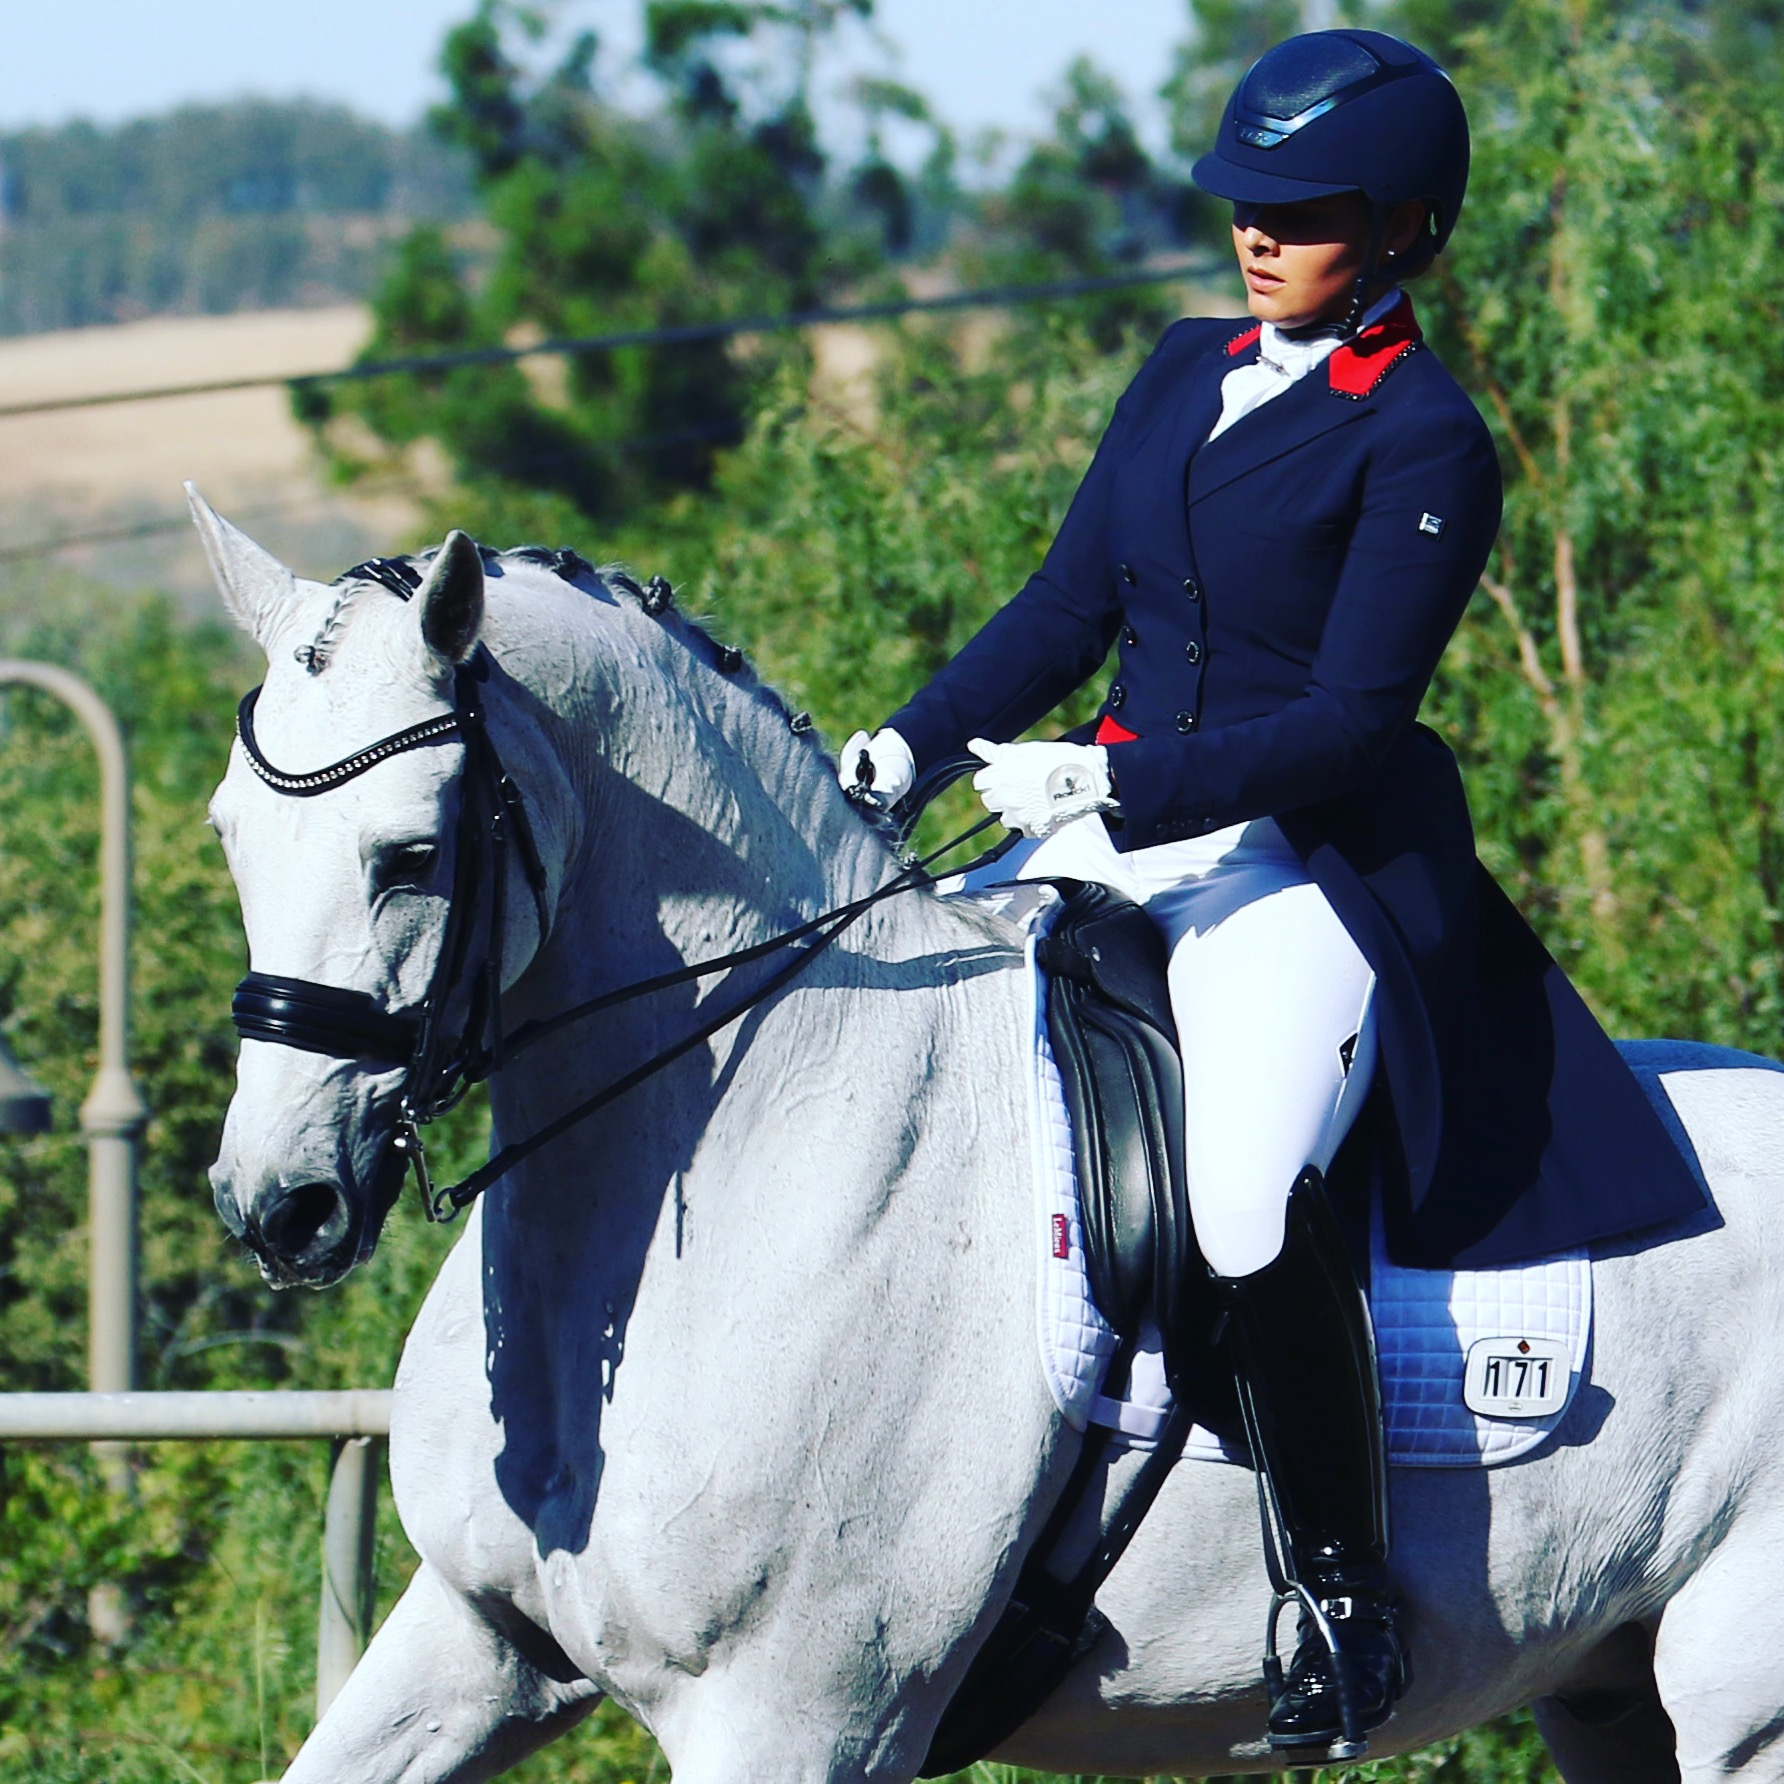 Shayne Dante - Shayne Dante Dressage: Grand Prix Dressage rider and trainer, USDF Bronze, Silver, and Gold Medalist on self-trained horsesUpcoming Competition Participation: 2022 Pan Asian Games and 2024 Paris OlympicsPC: Shayne Dante